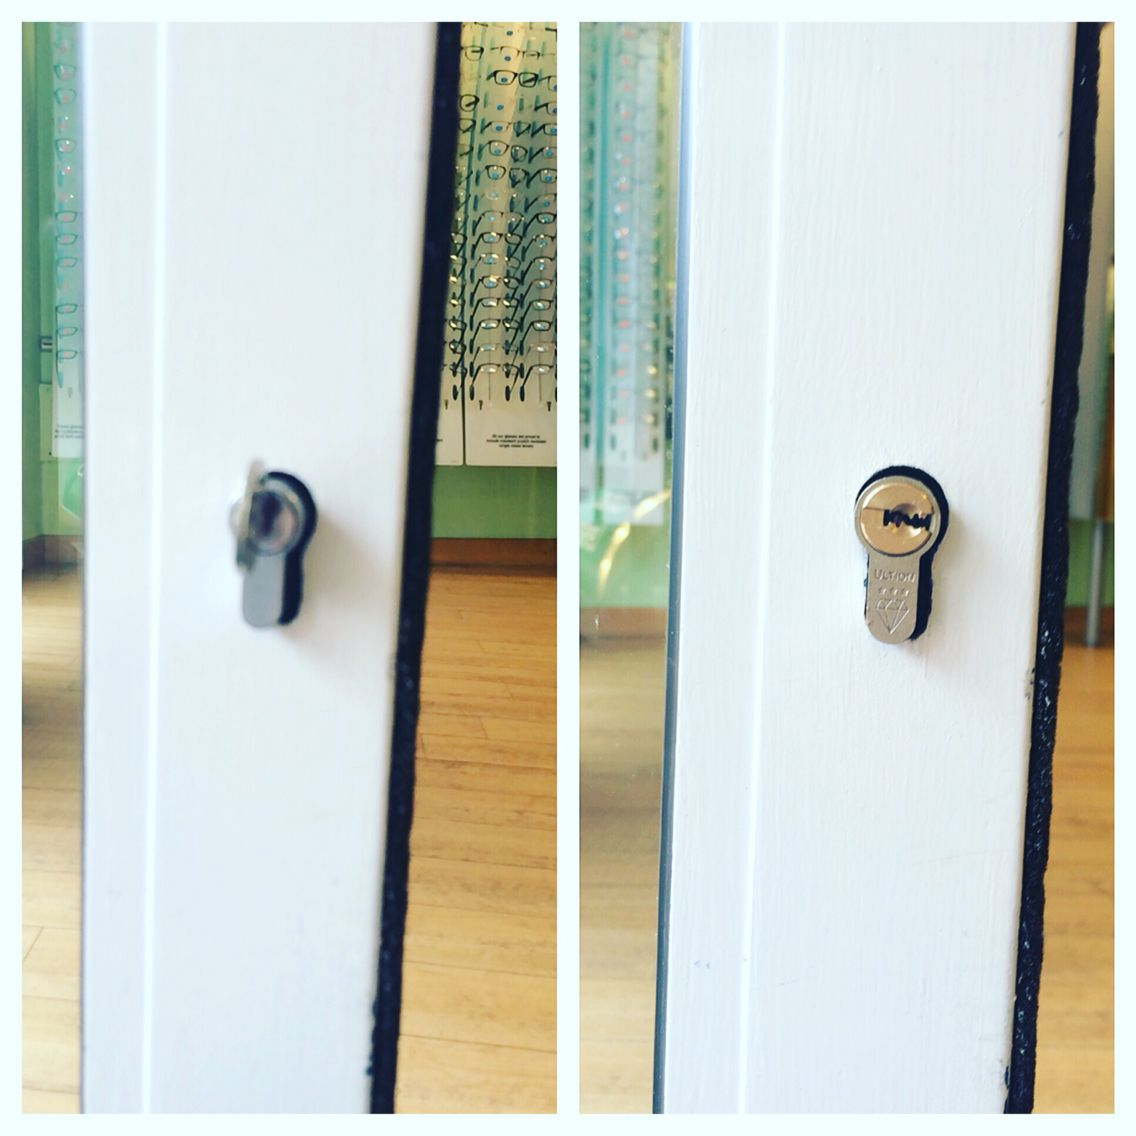 Lock upgrade on #hertford #specsavers 2 locks on the front door and ...